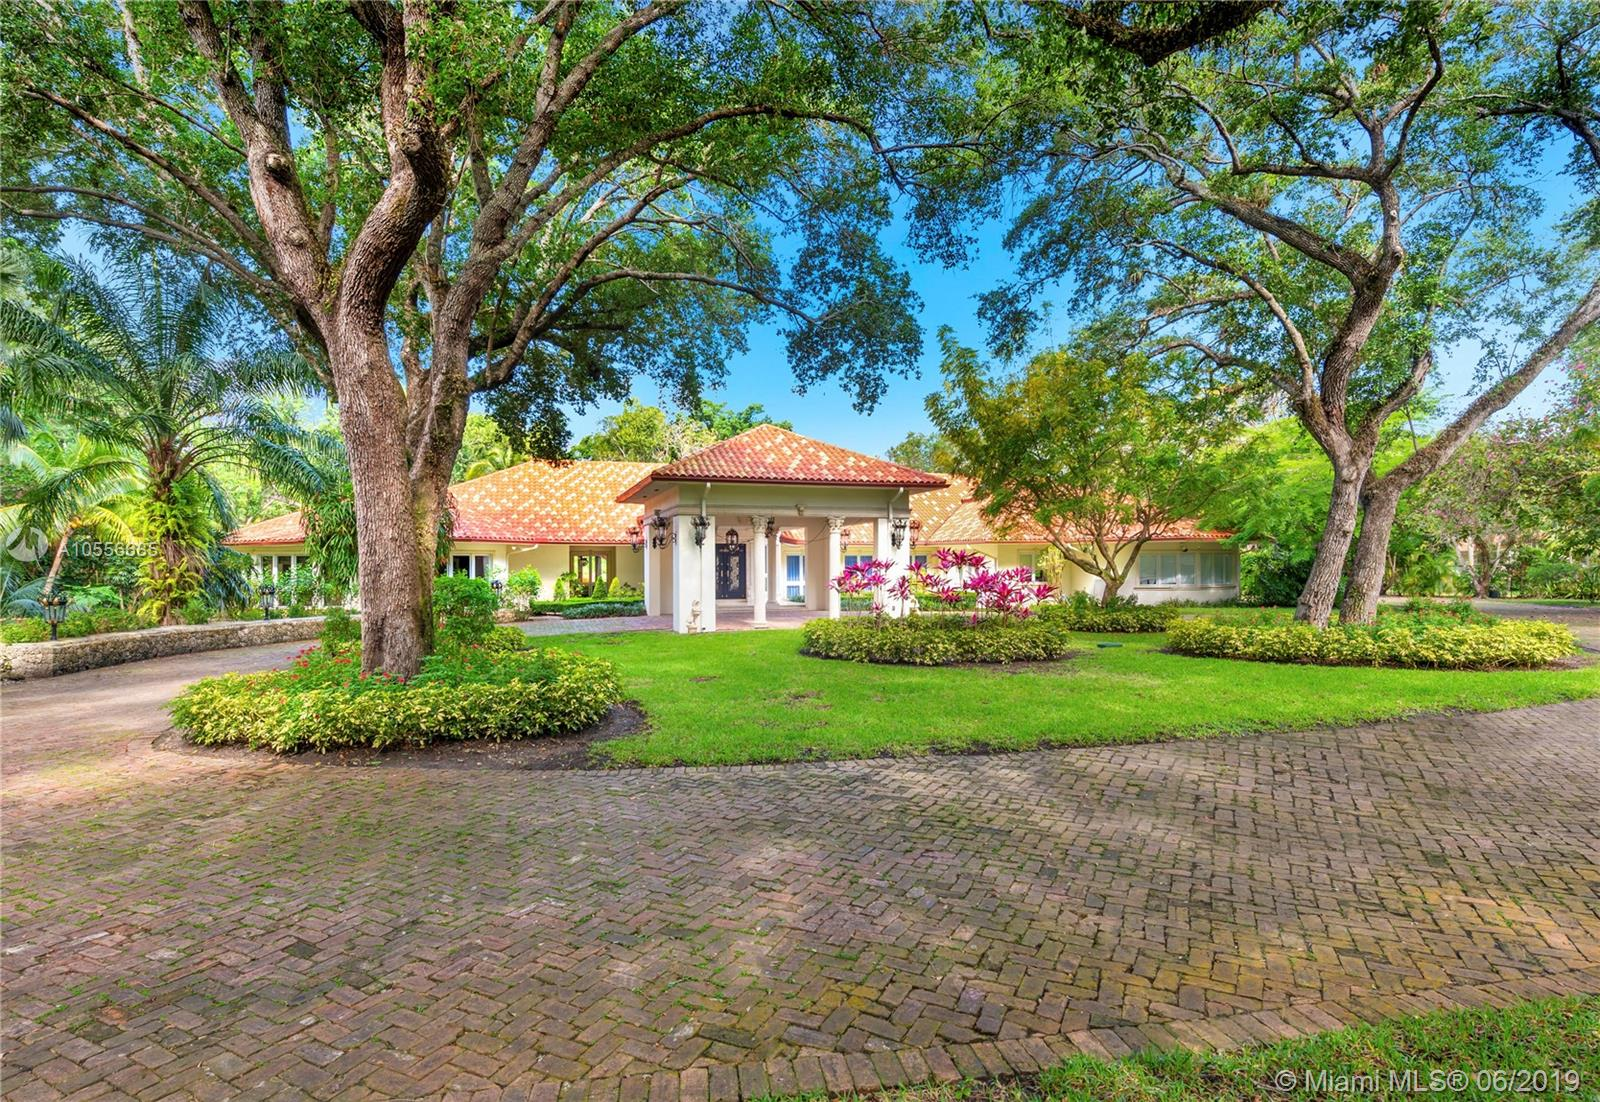 9400 Old Cutler Rd, one of homes for sale in Kendall